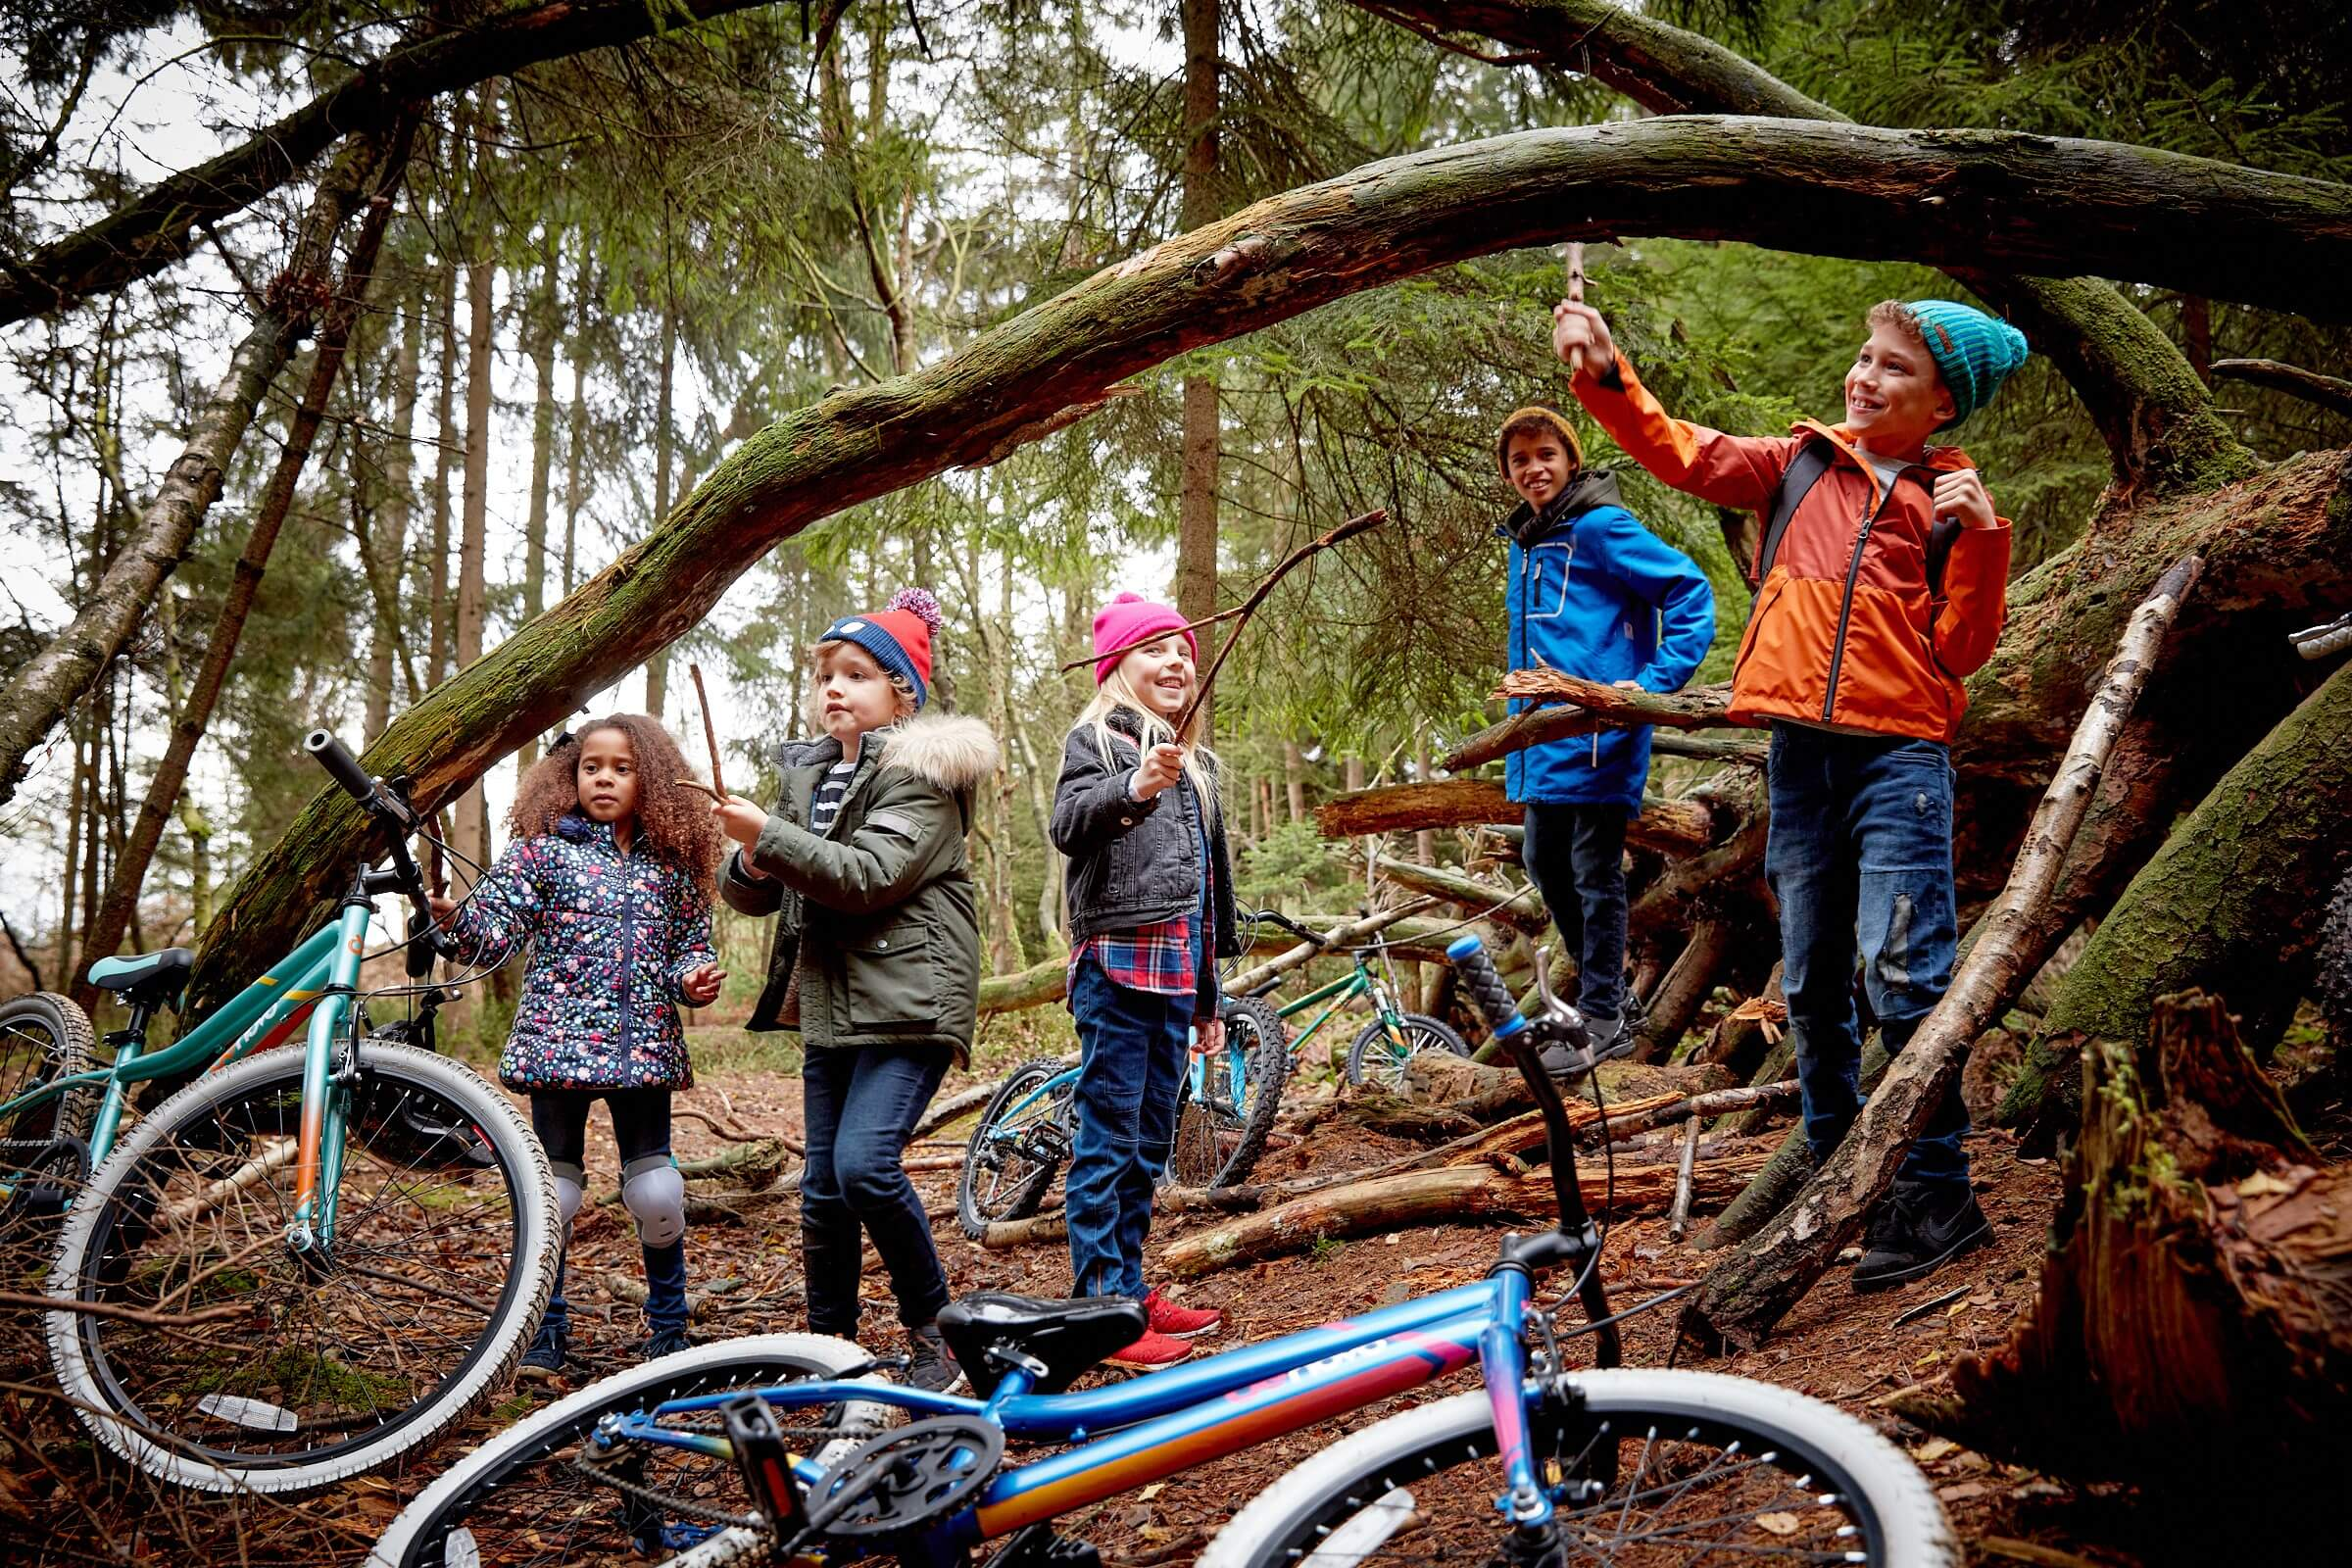 Why Kids Should Take Up Cycling<br><br>